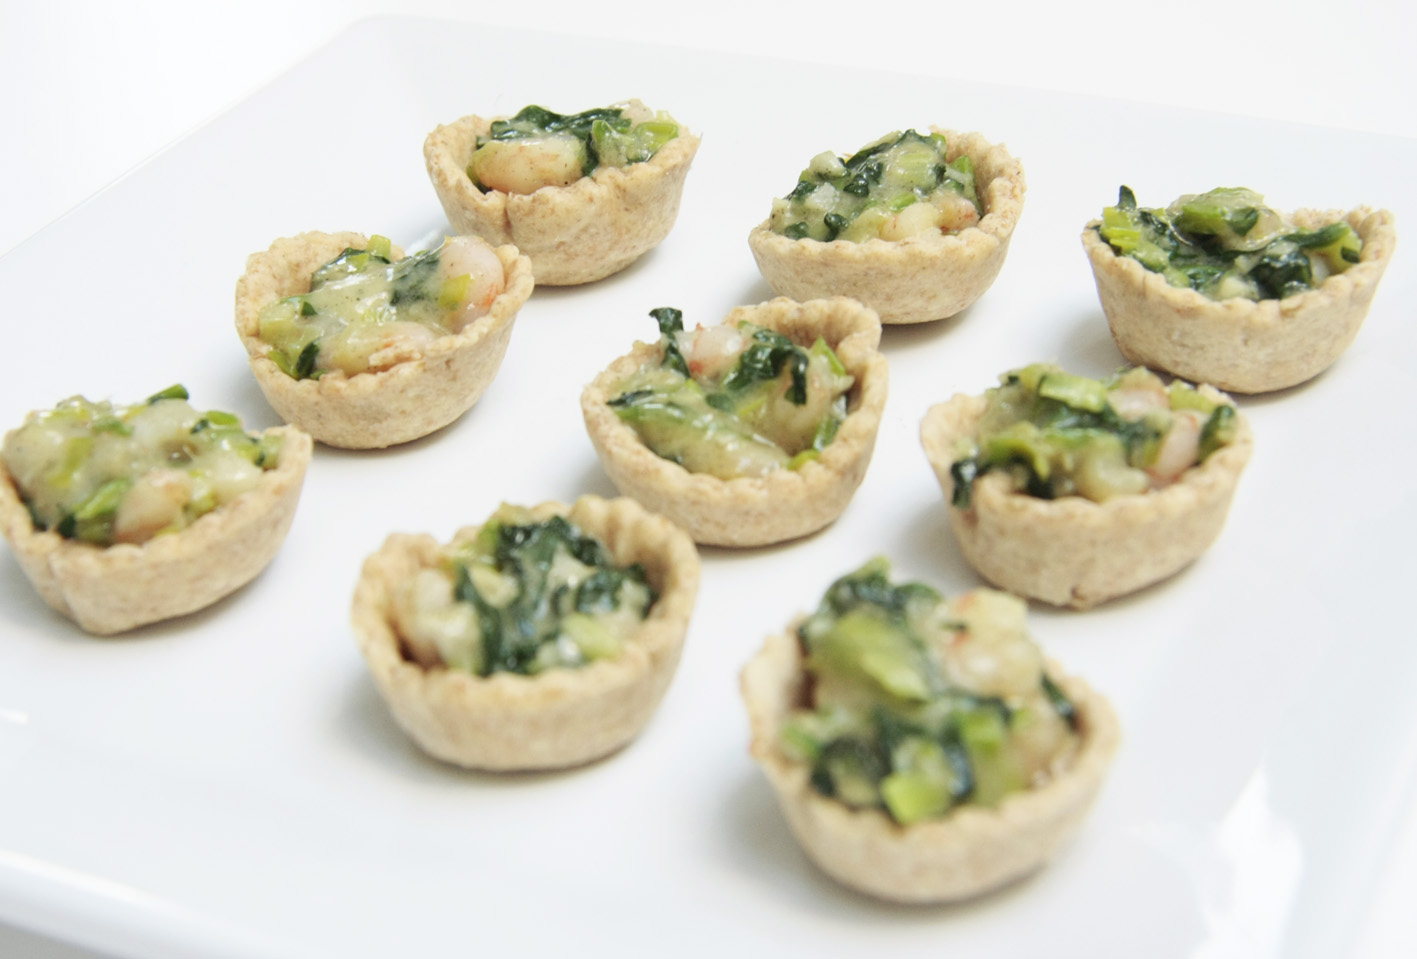 Christmas canapes the foodspa way indulgent but healthy for Canape cup fillings